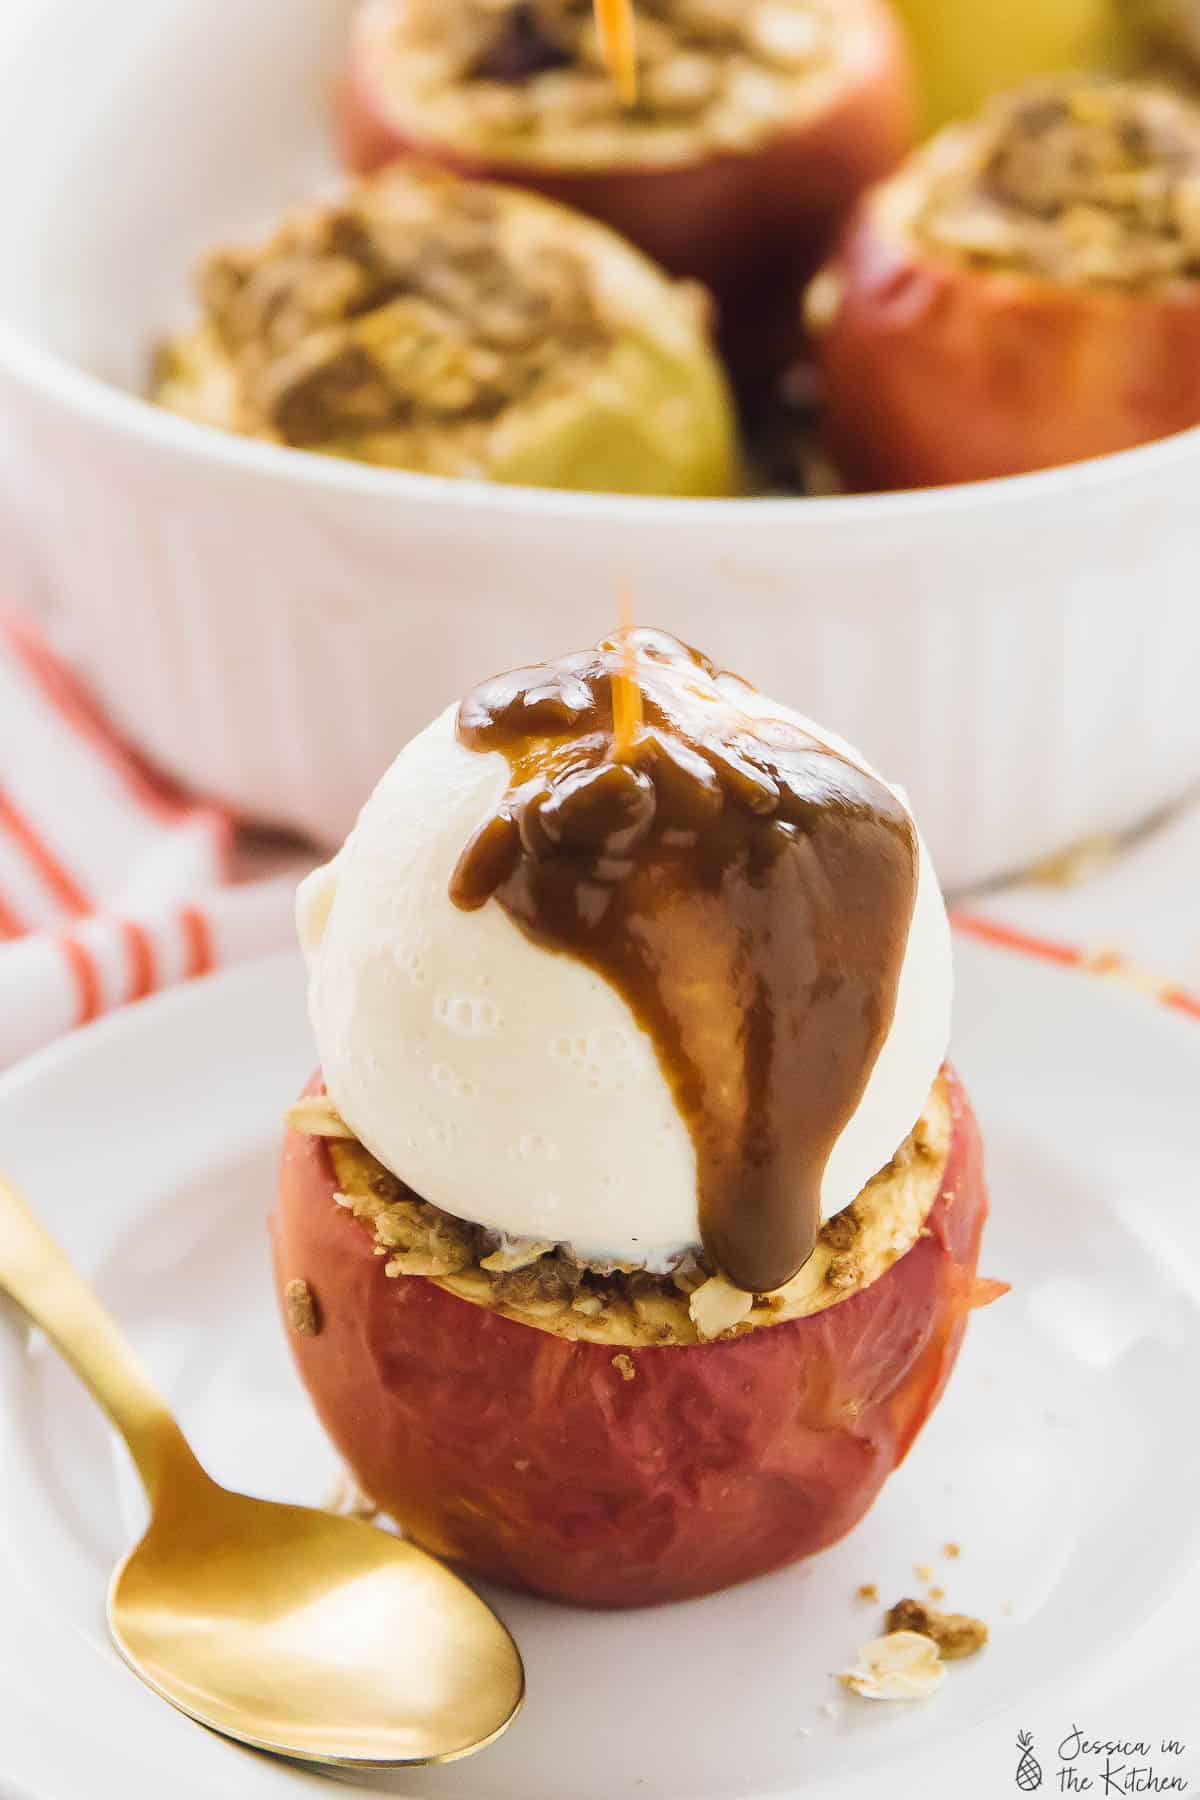 Baked Apples Stuffed With Cinnamon Oat Crisp Vegan Jessica In The Kitchen